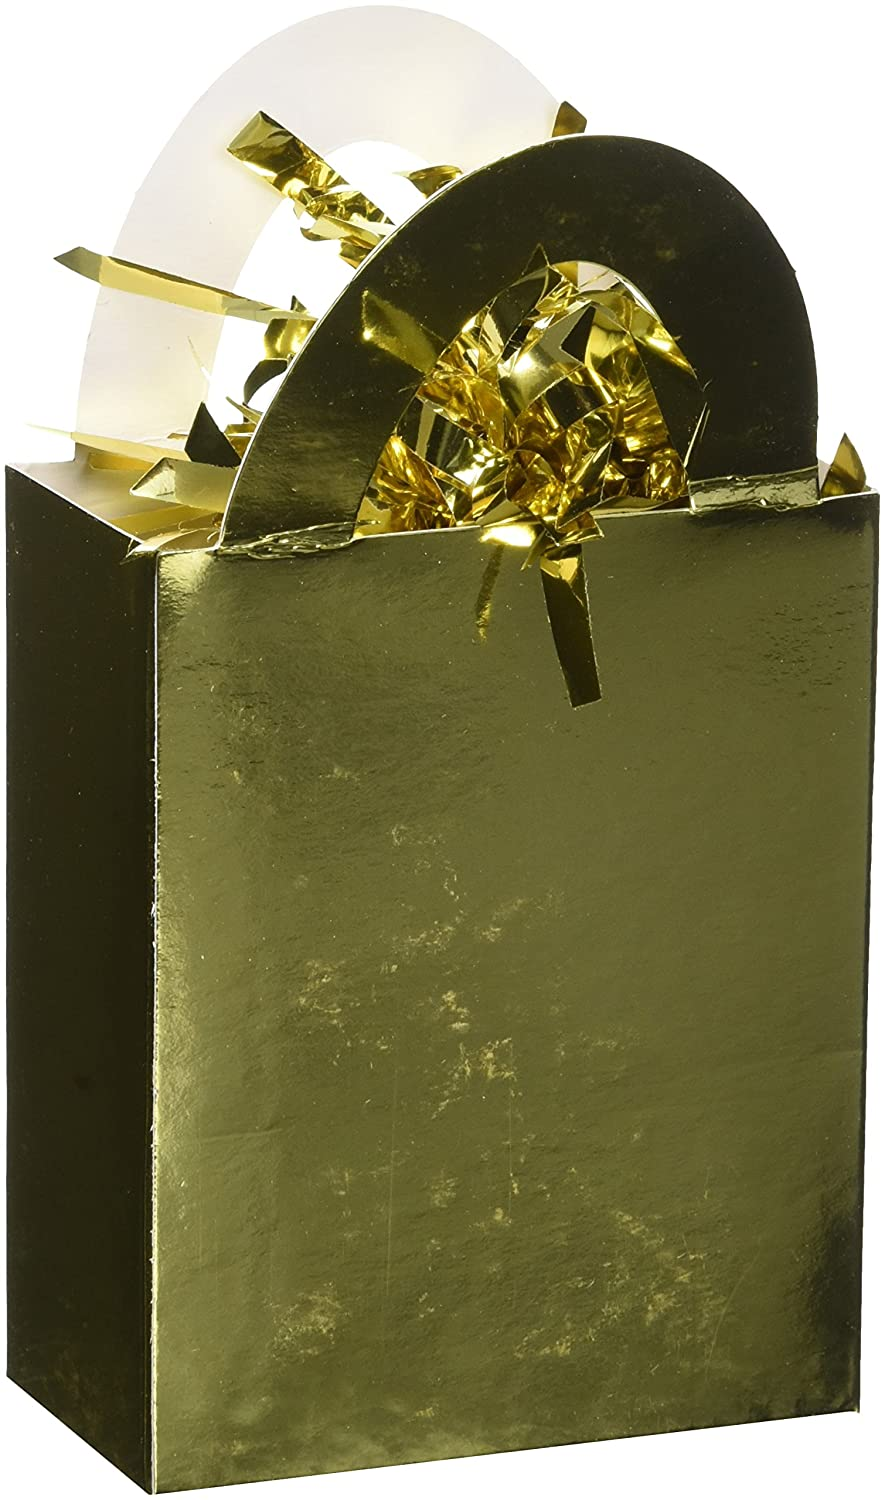 (Gold) - Amscan Mini Tote Balloon Weight Gold Party Decor 12 Ct.  ゴールド B077FN9HX3